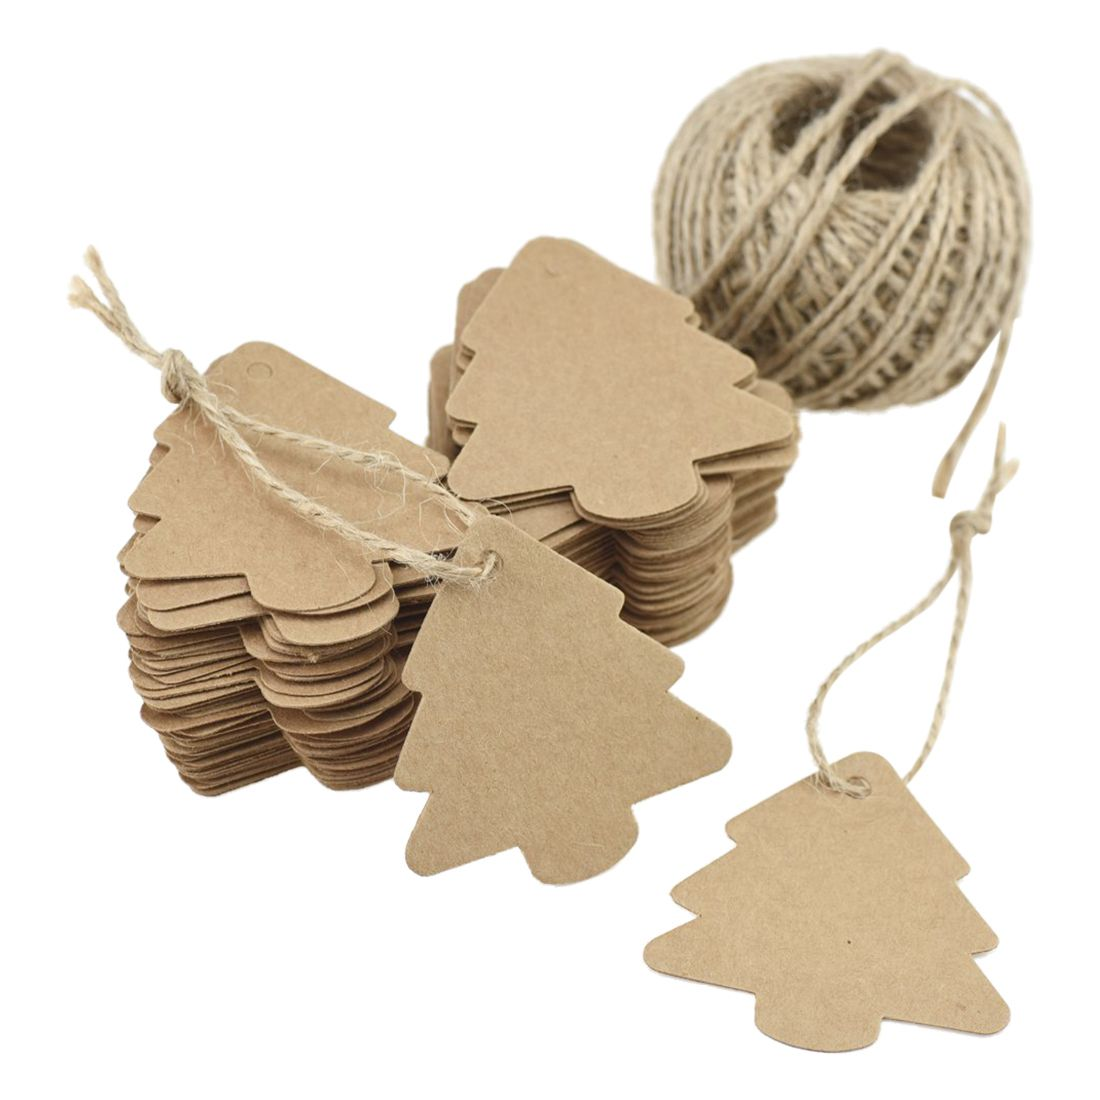 100 Pcs Brown Kraft Paper Blank Tags for Wedding Gift Card Luggage Baking Craft Projects Scrapbooking DIY with Jute Twine Ball